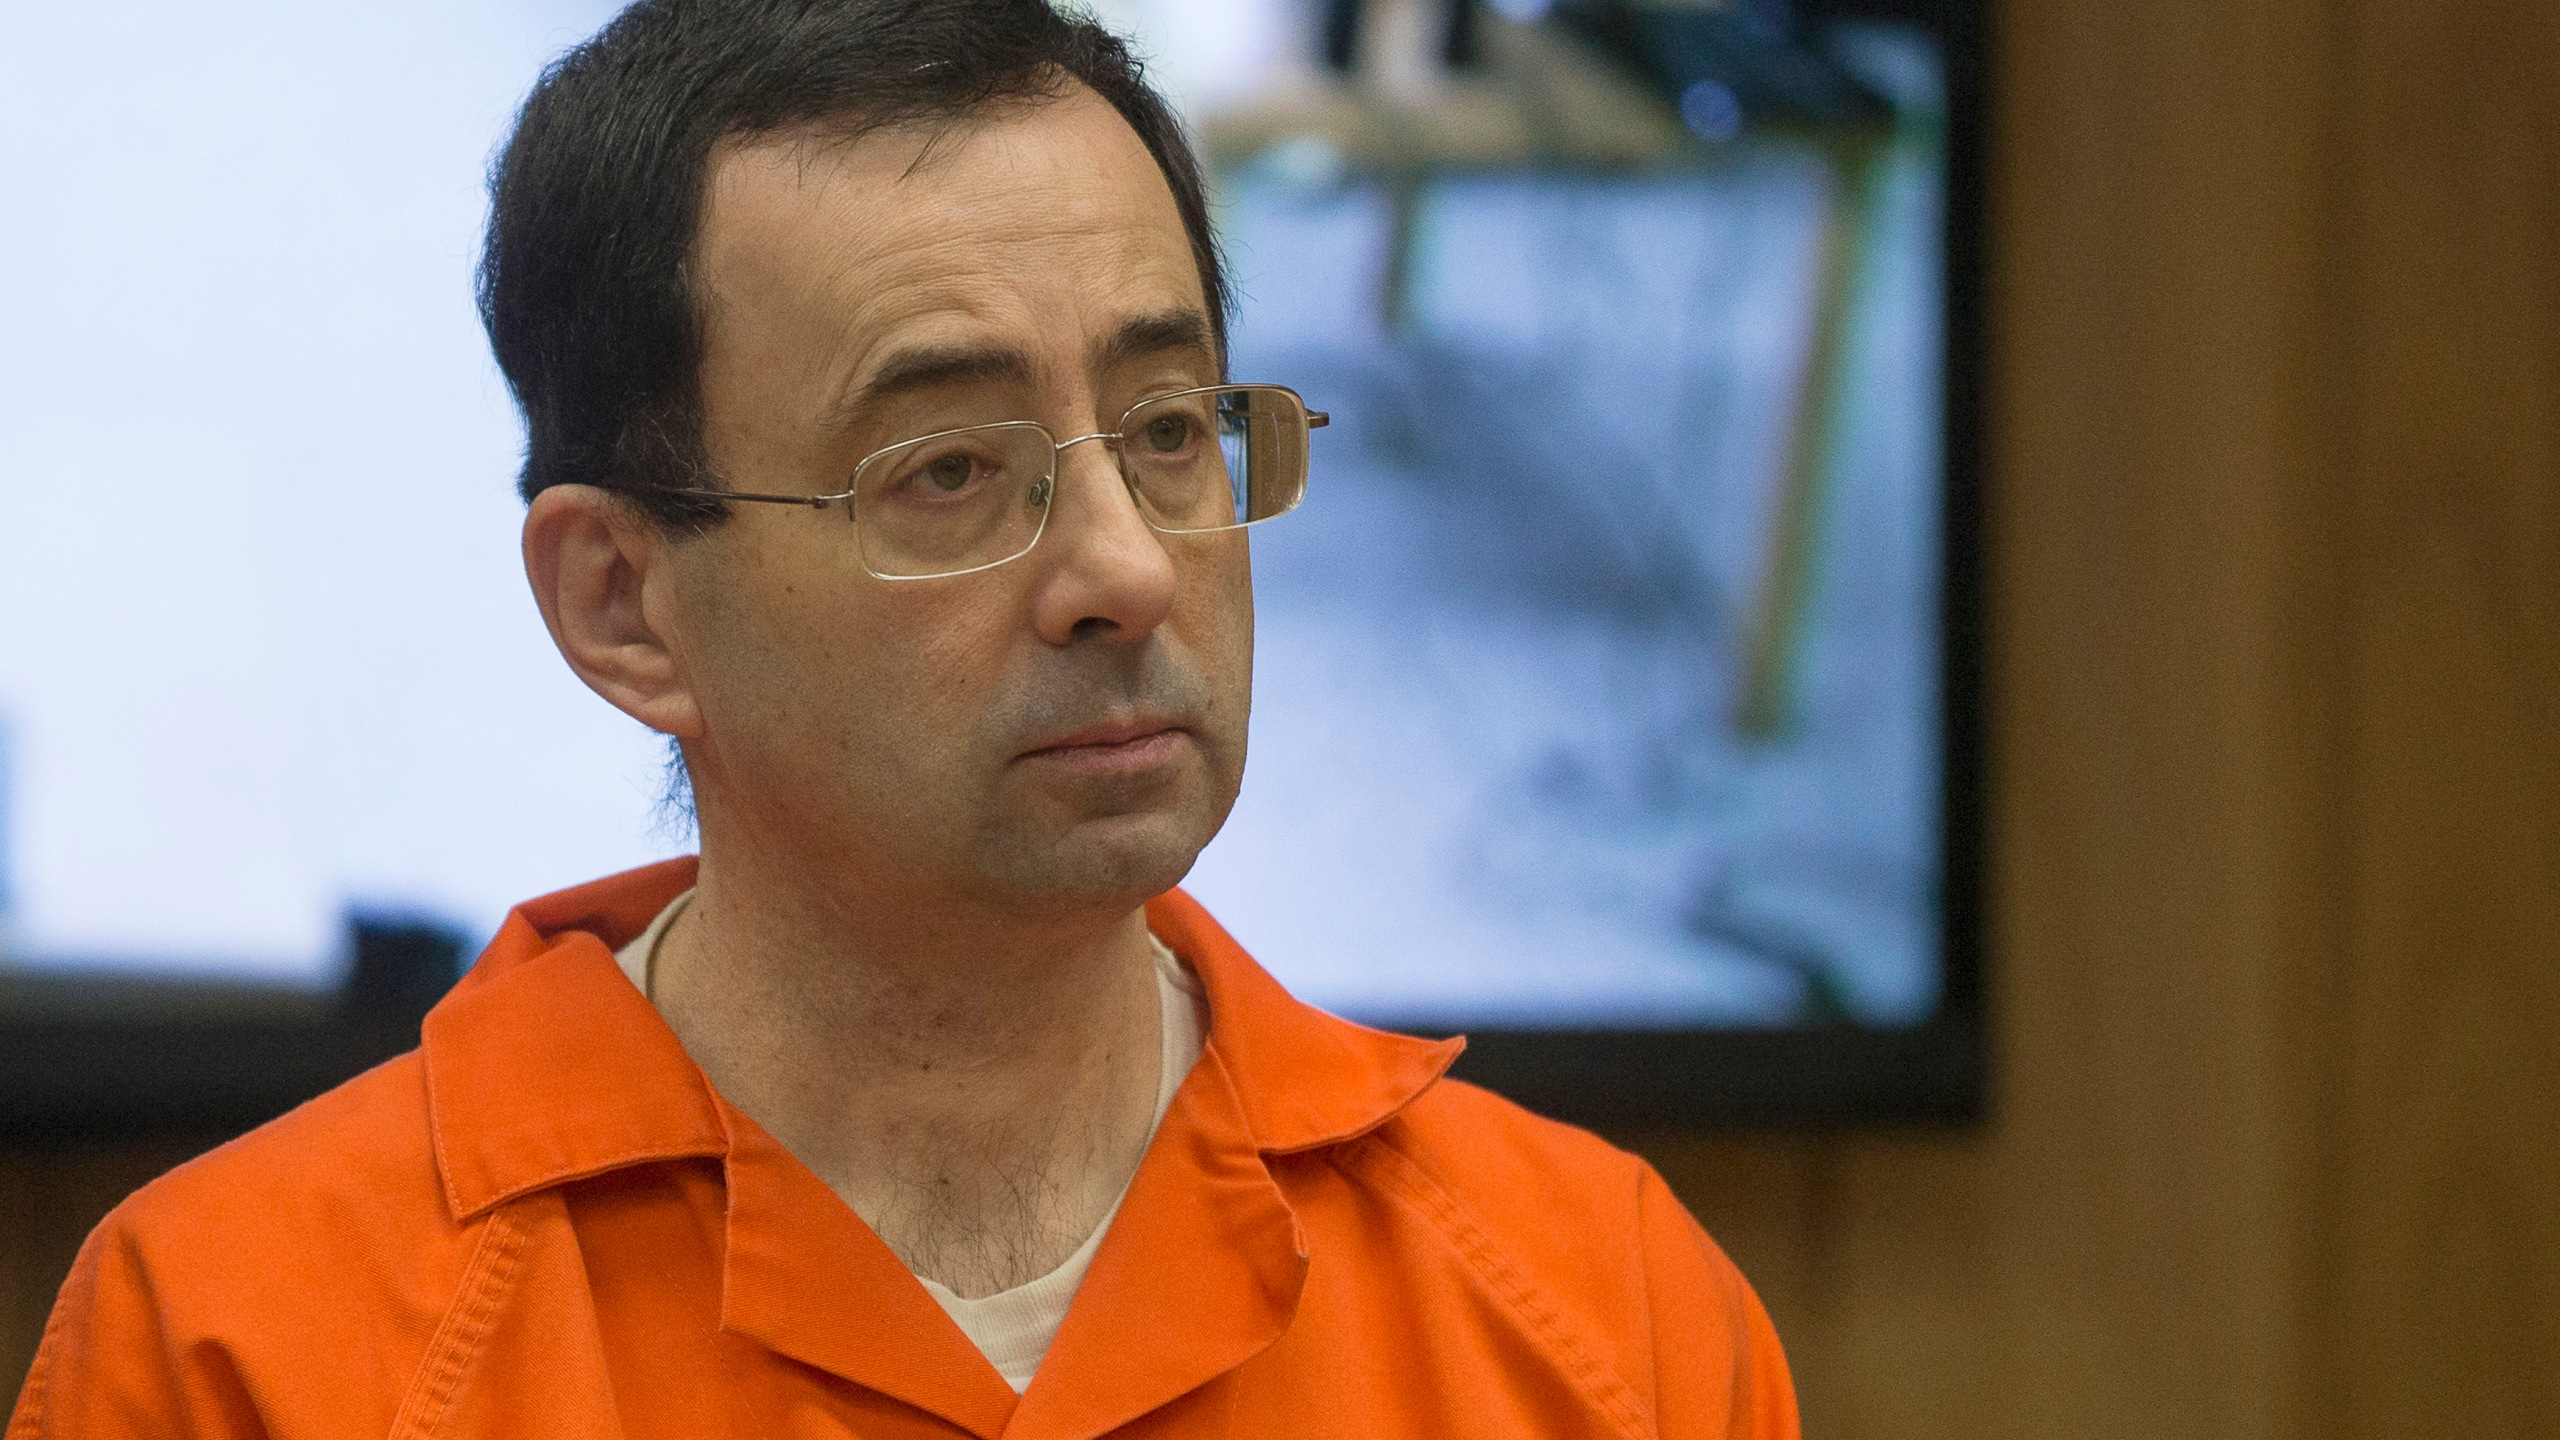 Former Michigan State University and USA Gymnastics doctor Larry Nassar appears in court for his final sentencing phase in Eaton County Circuit Court on Feb. 5, 2018, in Charlotte, Michigan. (Credit: RENA LAVERTY/AFP/Getty Images)